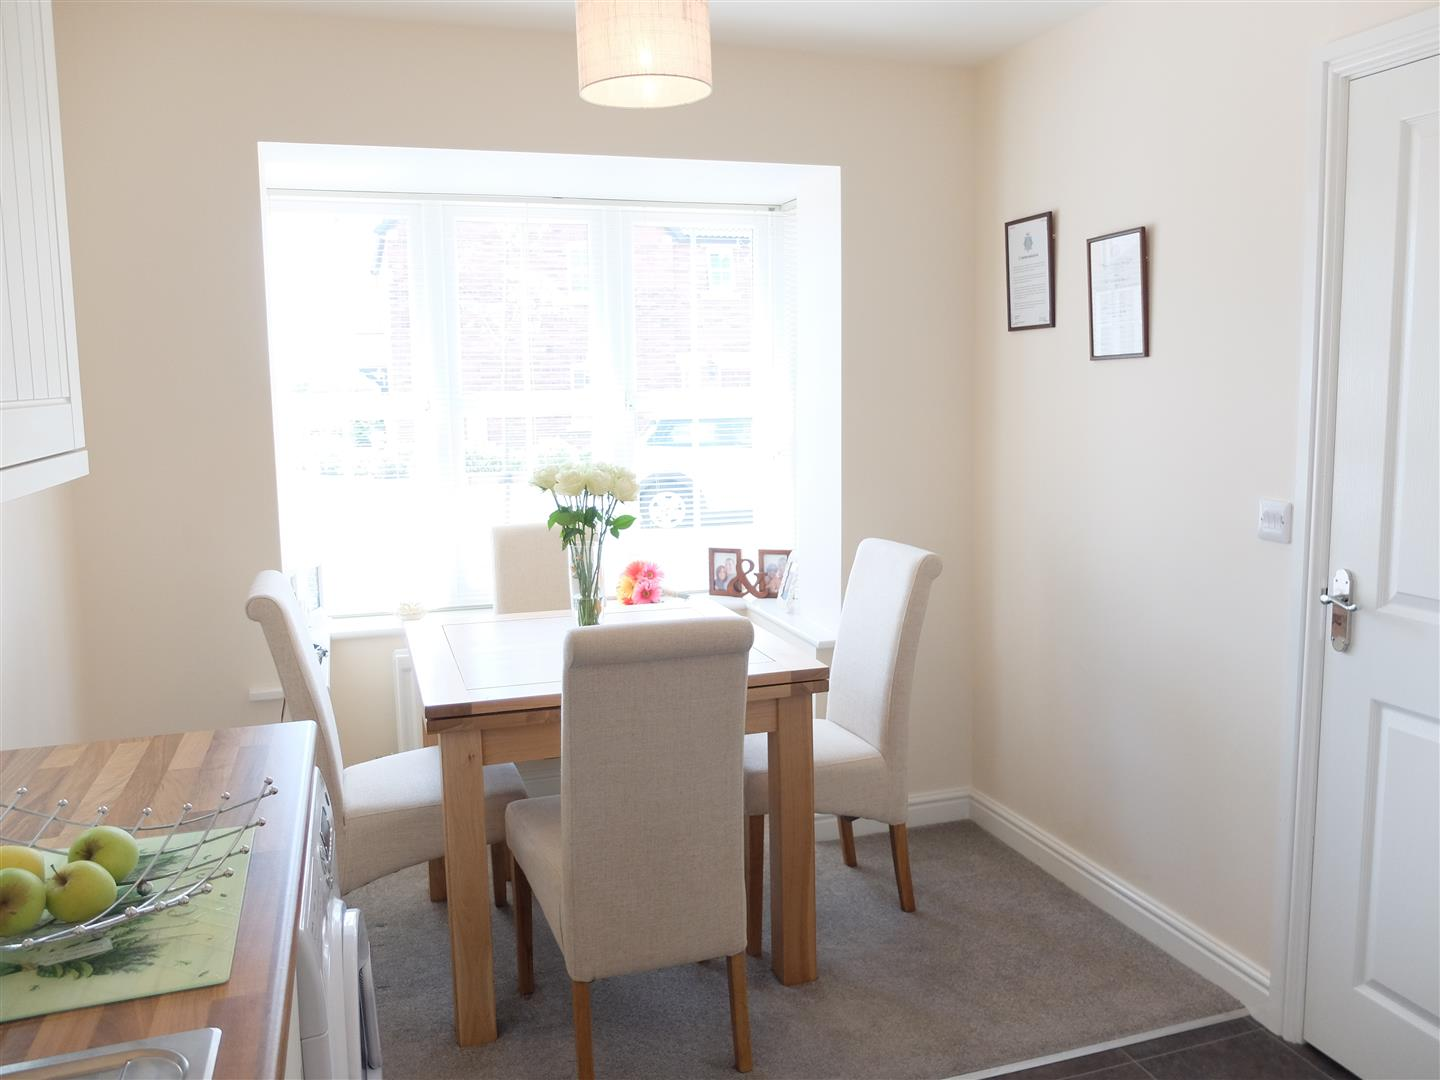 3 Bedrooms House - Semi-Detached On Sale 3 Elliot Drive Carlisle